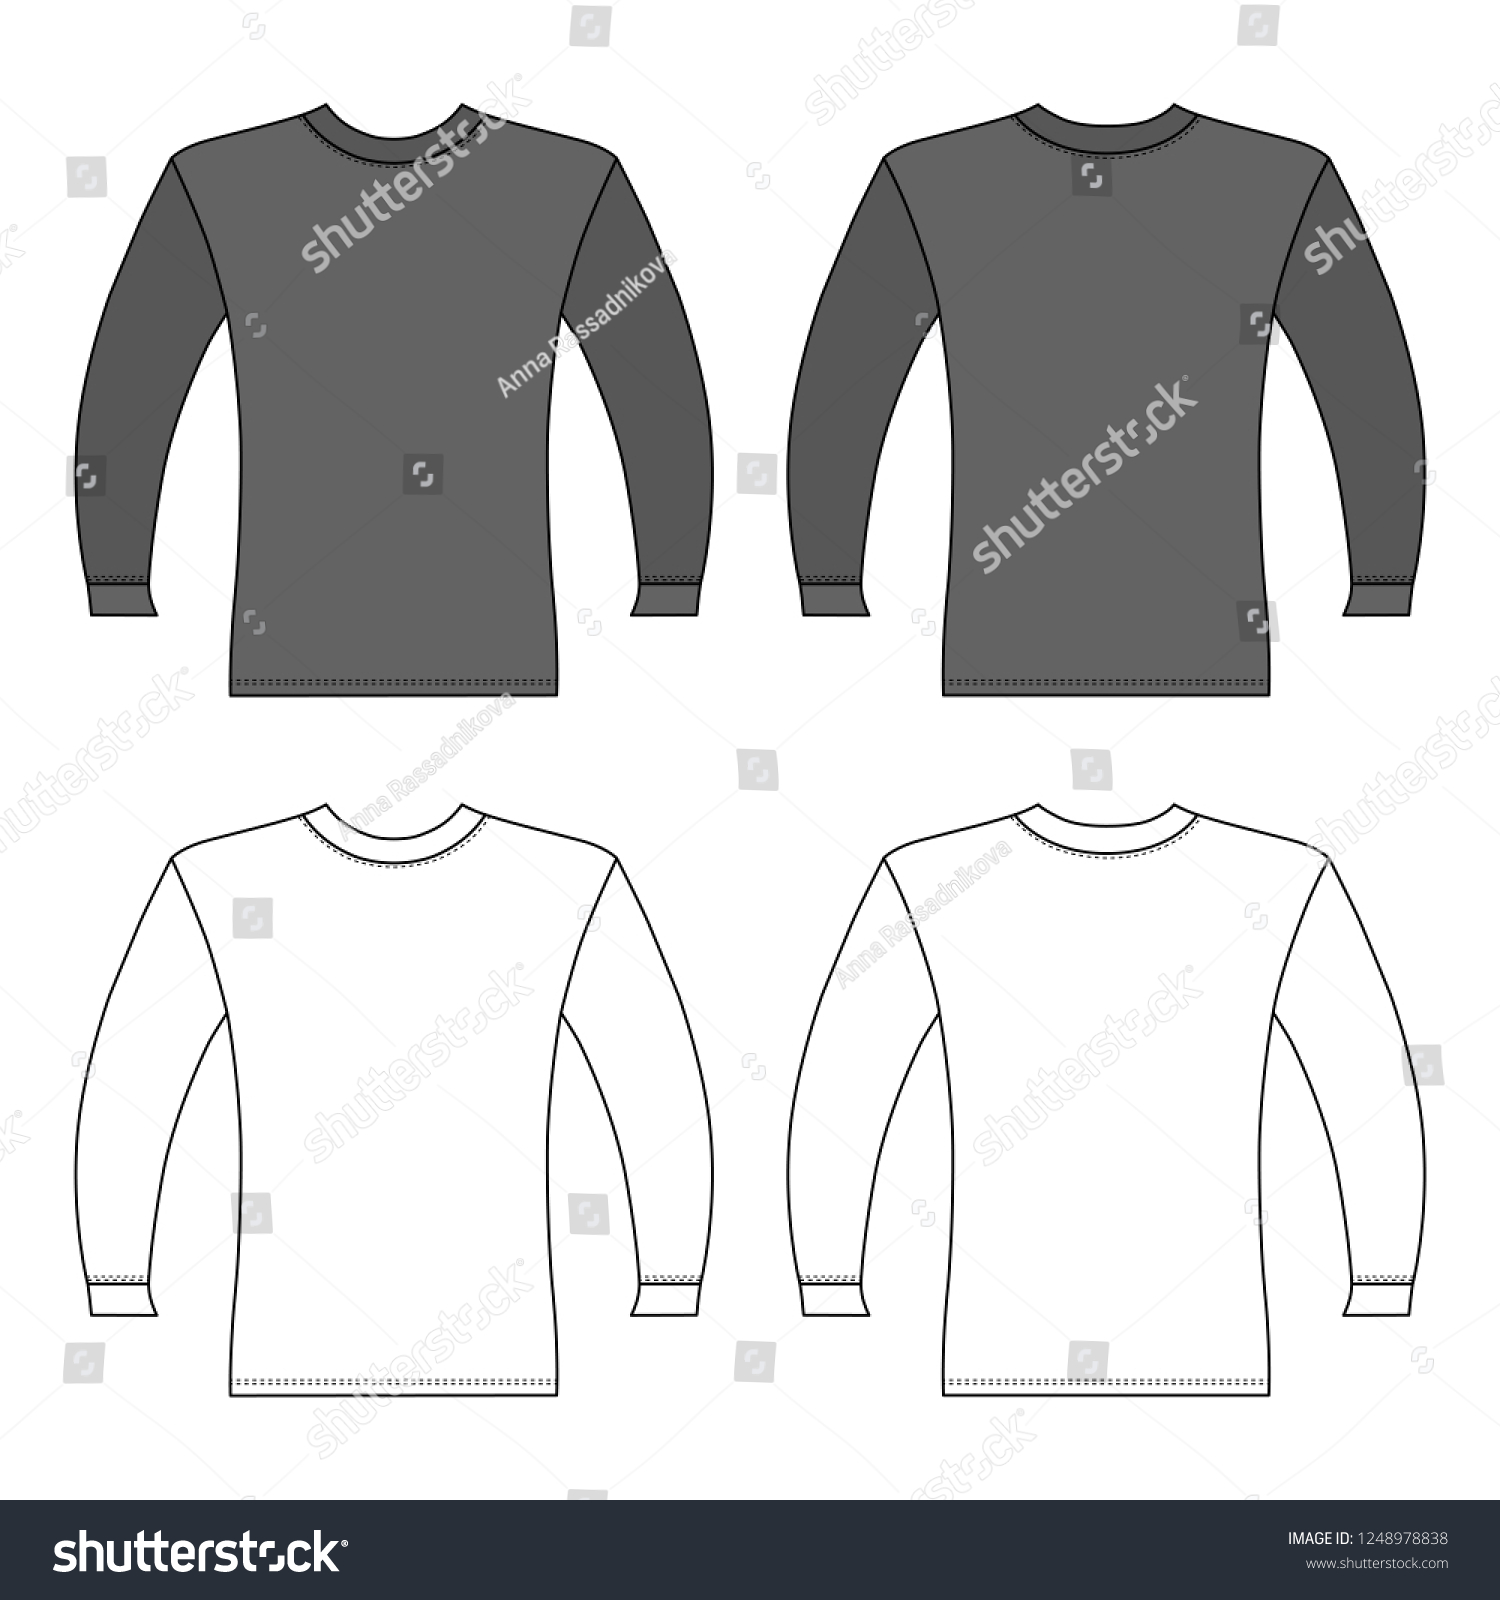 Royalty Free Stock Illustration Of T Shirt Man Template Front Back